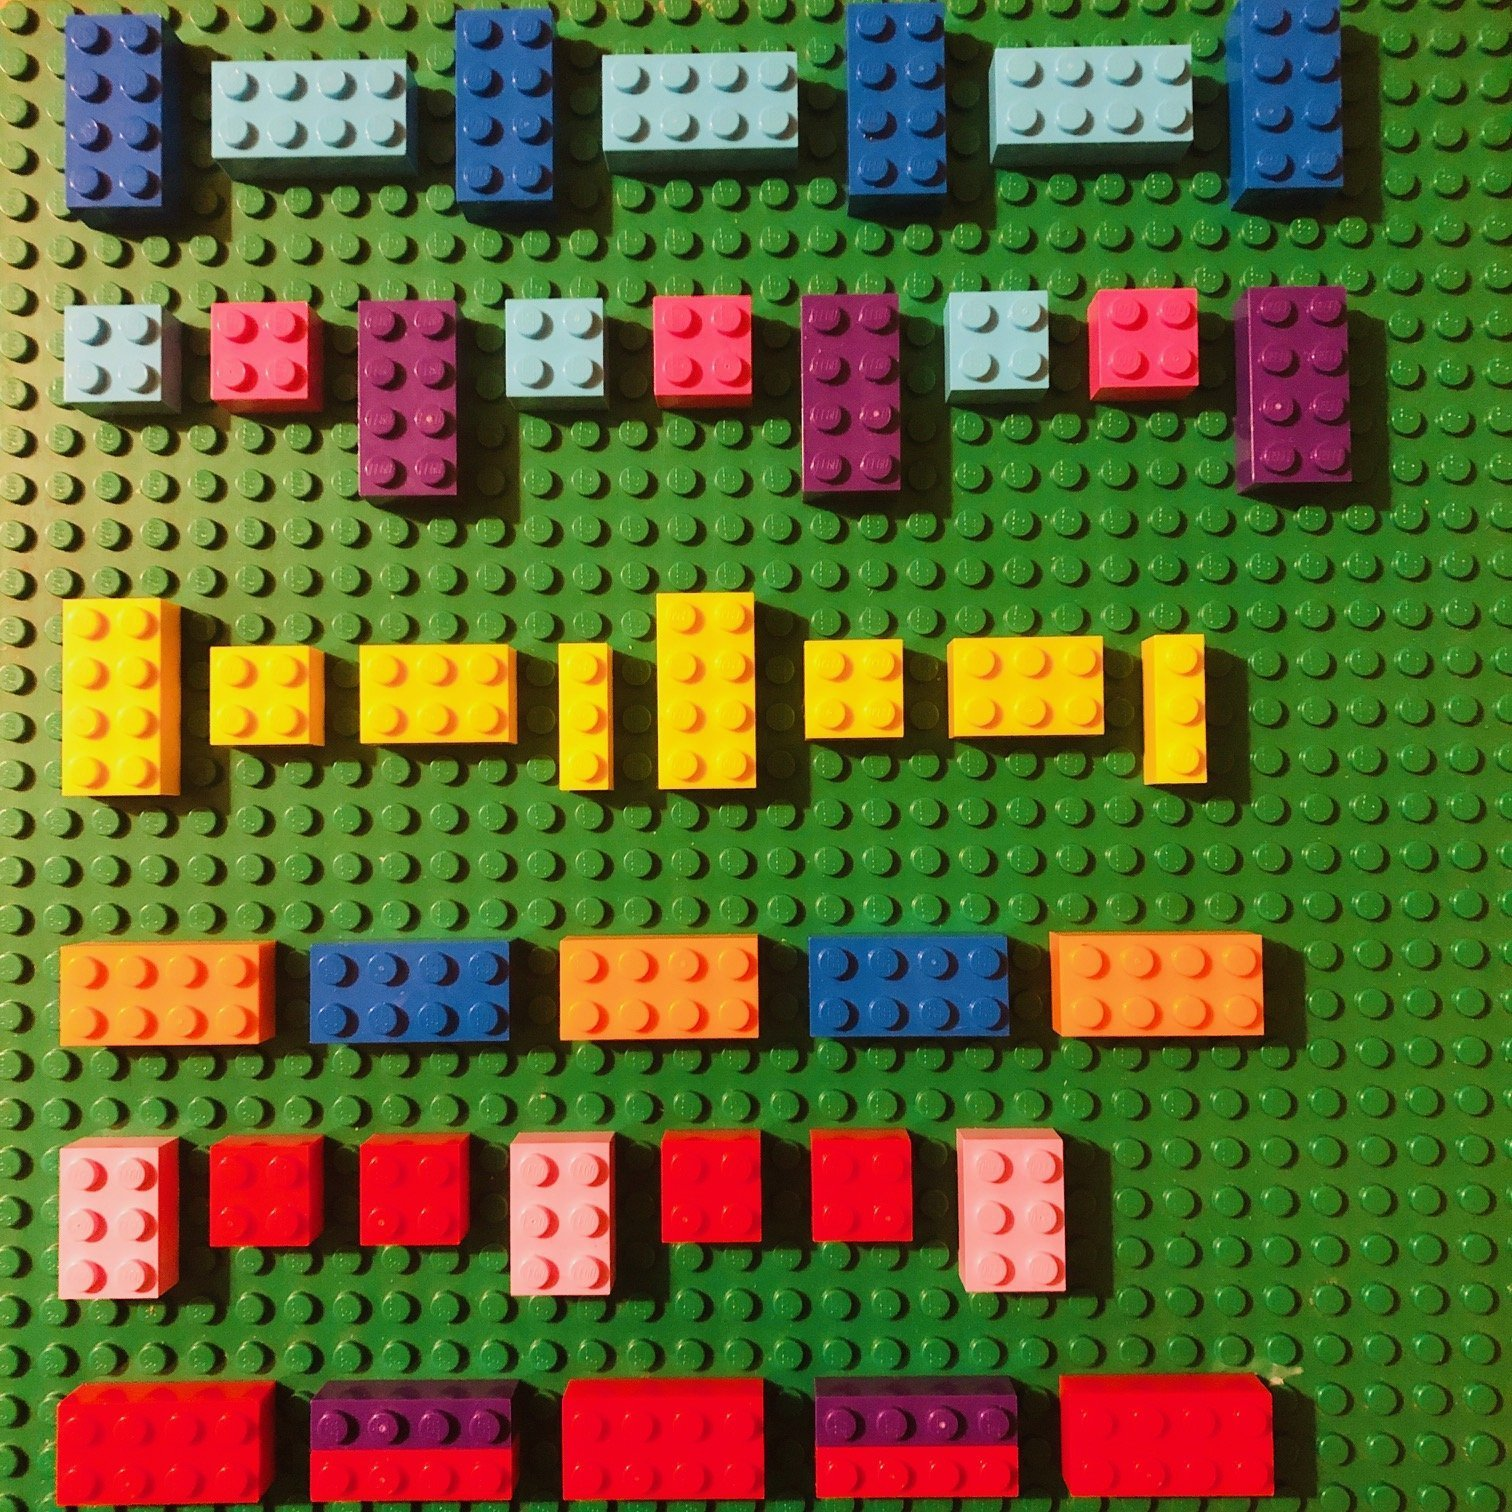 Lego Repeating Patterns